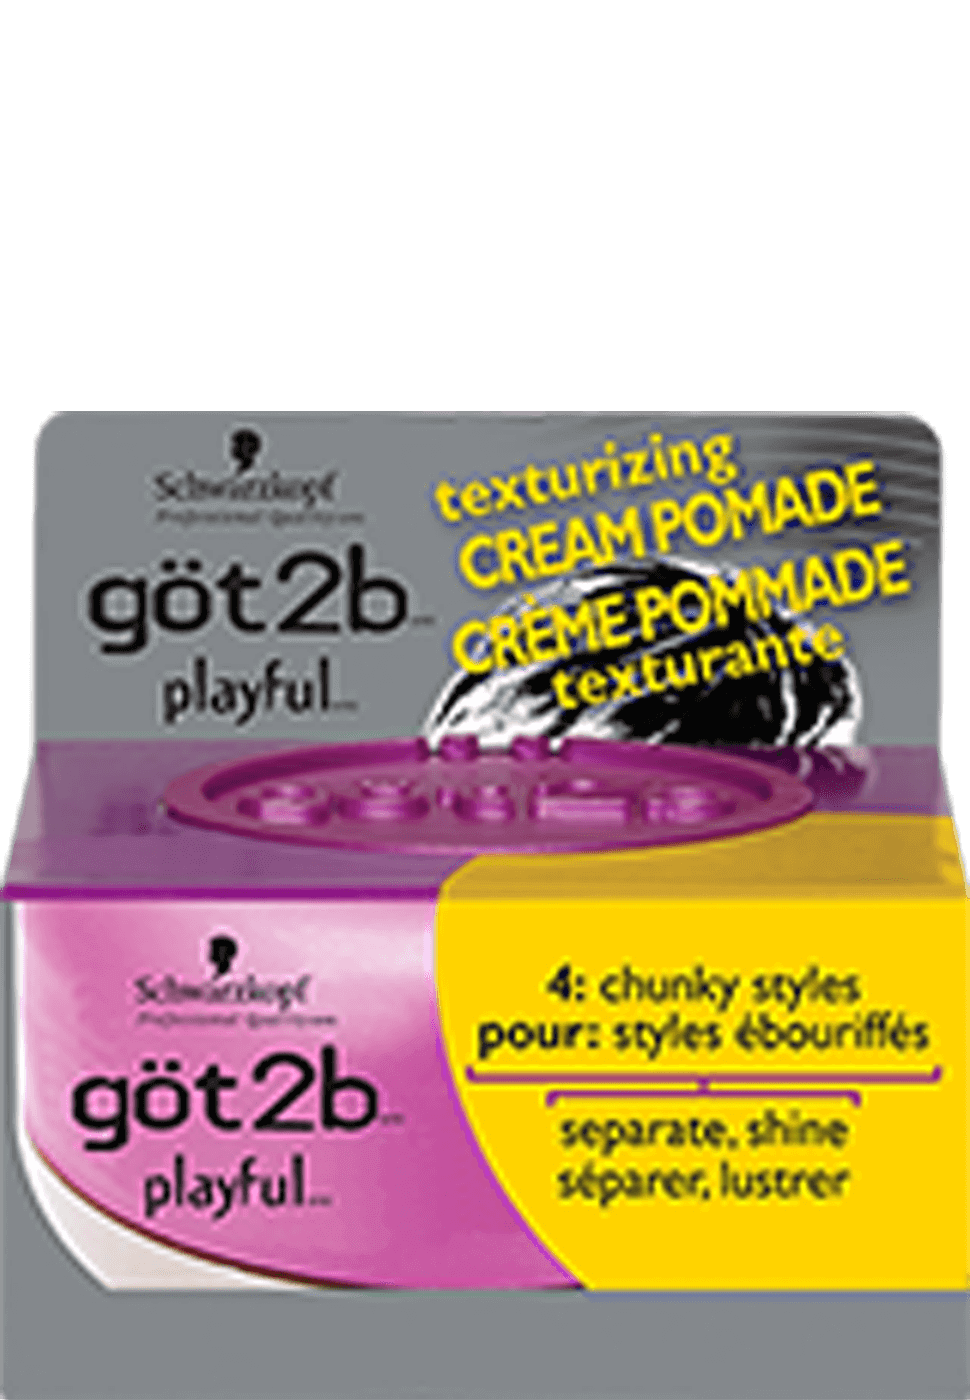 got2b_en_playful_texturizing_cream_pomade_970x1400